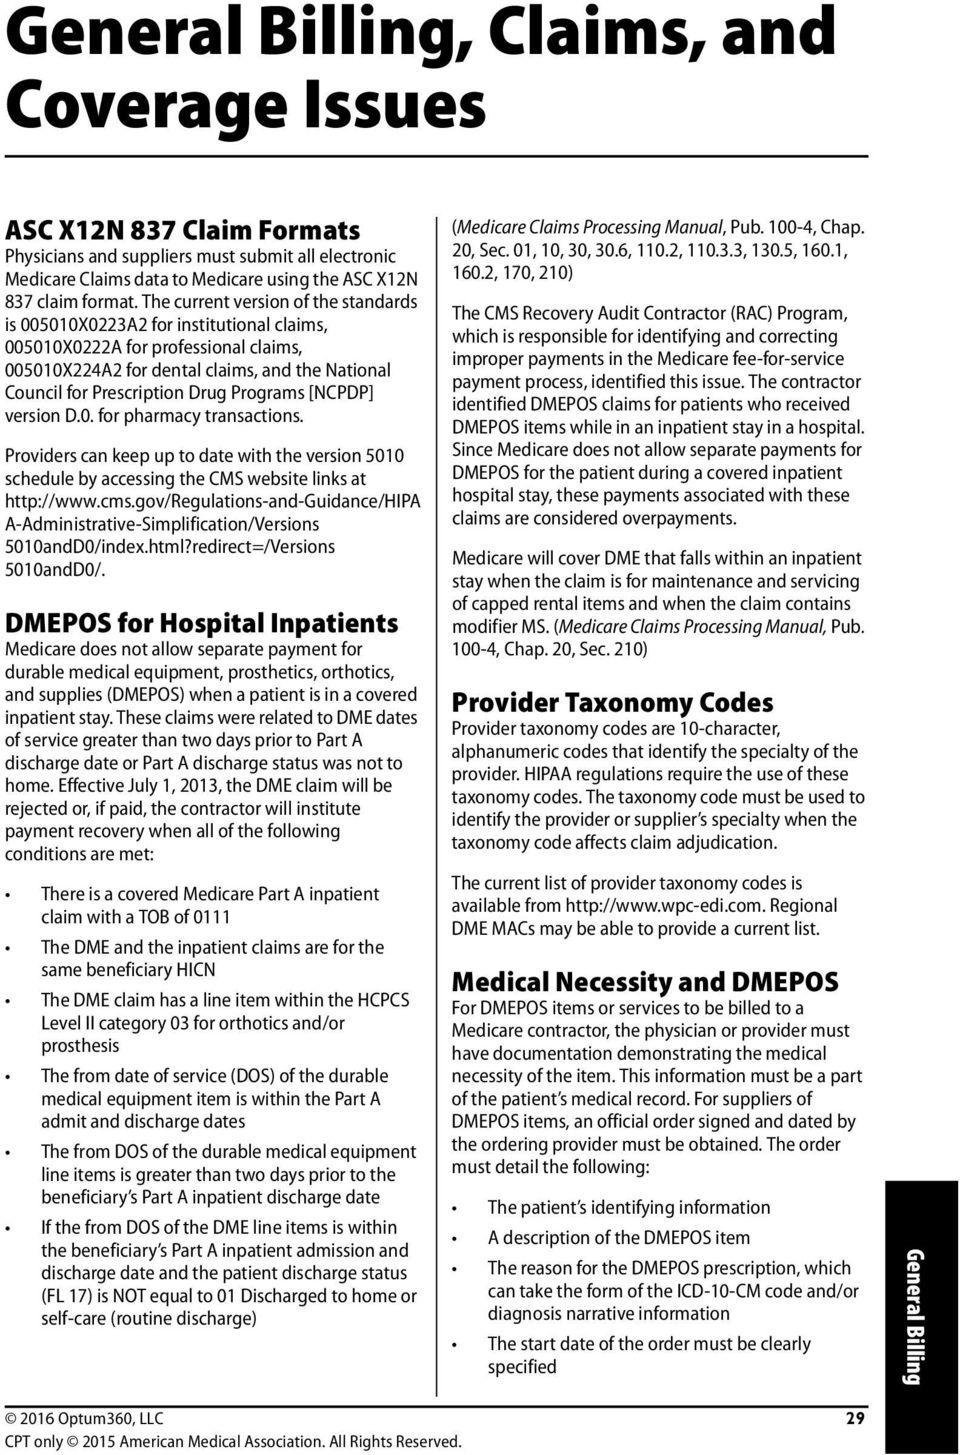 Programs [NCPDP] version D.0. for pharmacy transactions. Providers can keep